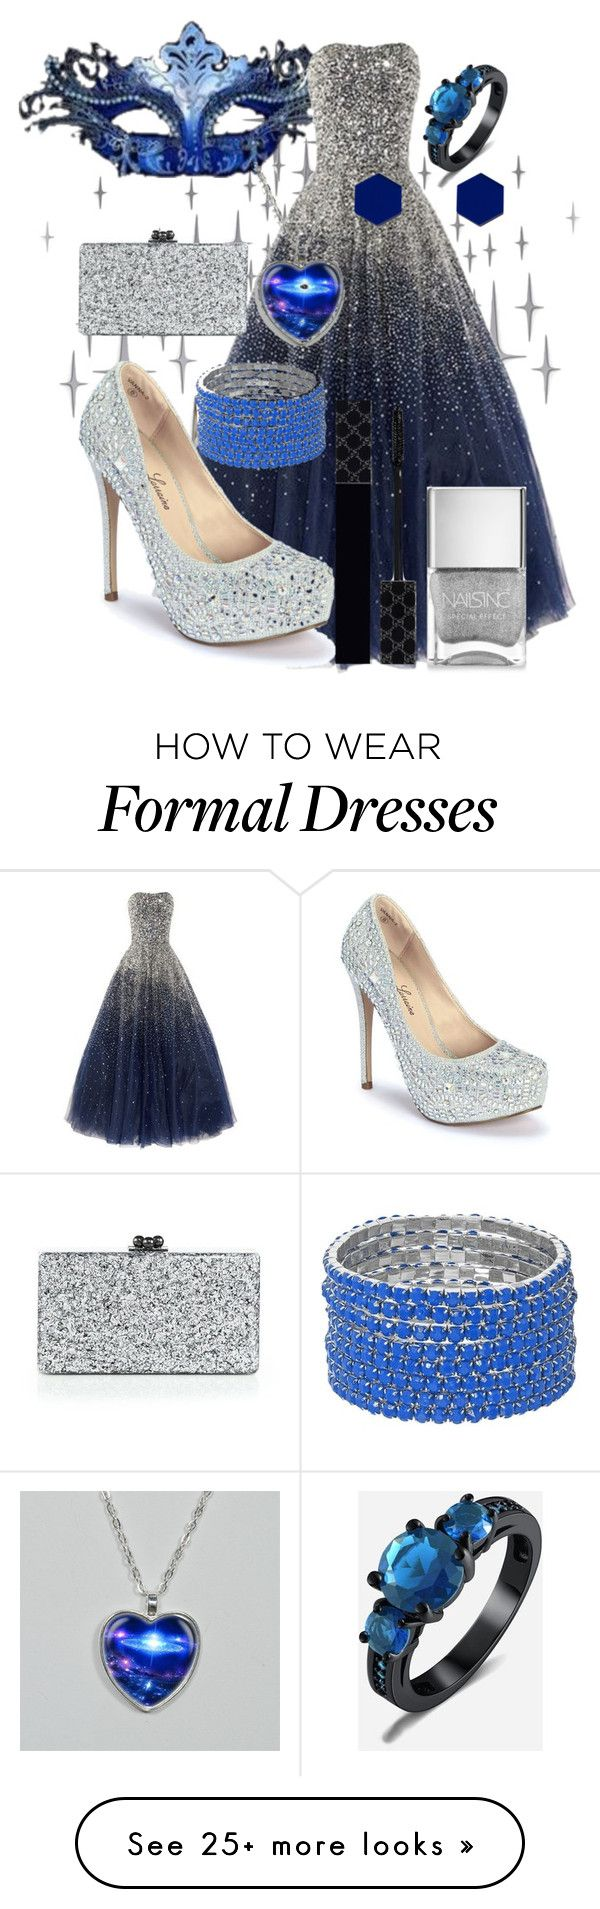 """""""Masquerade Ball"""" by hipstermonkey12 on Polyvore featuring DOMESTIC, Masquerade, Lauren Lorraine, Edie Parker, Nails Inc., Gucci and Wolf & Moon"""